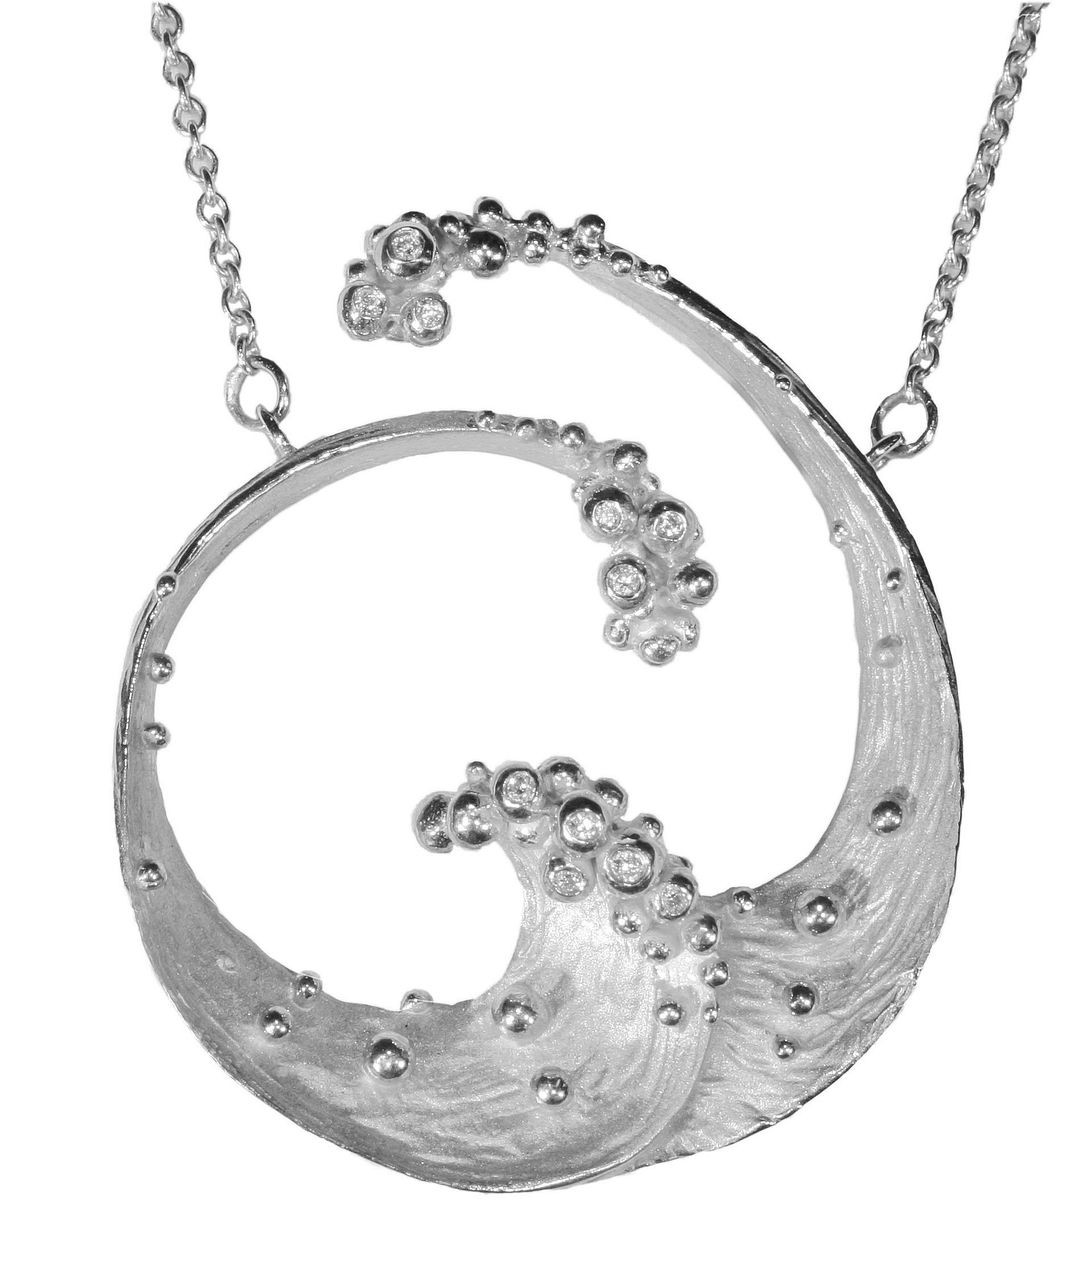 Ocean Necklace-Large-Sterling silver with diamonds- plate options available